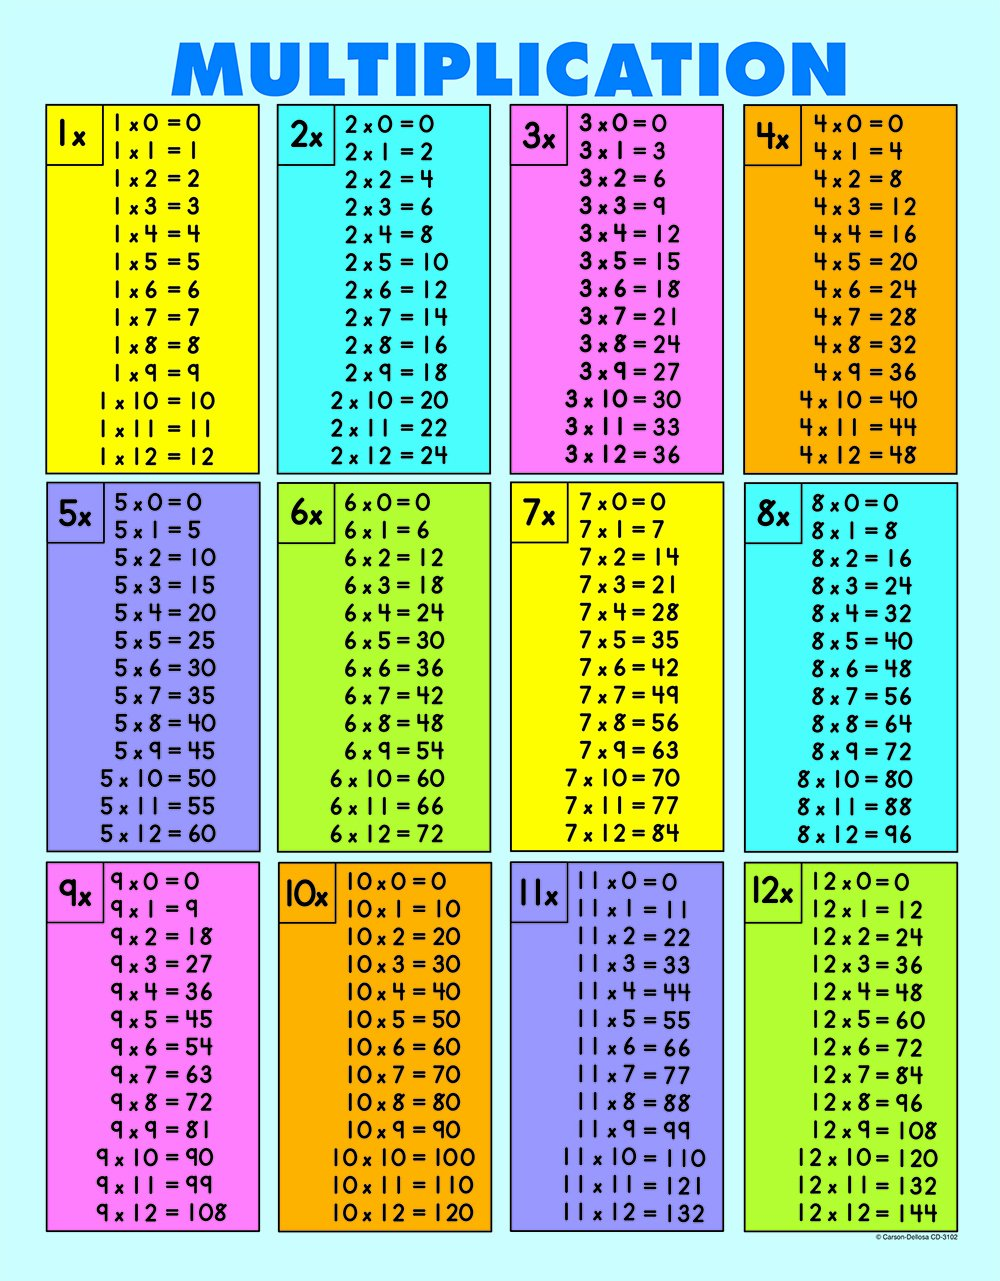 Multiplication facts through 12 popflyboys for Table de multiplication de 12